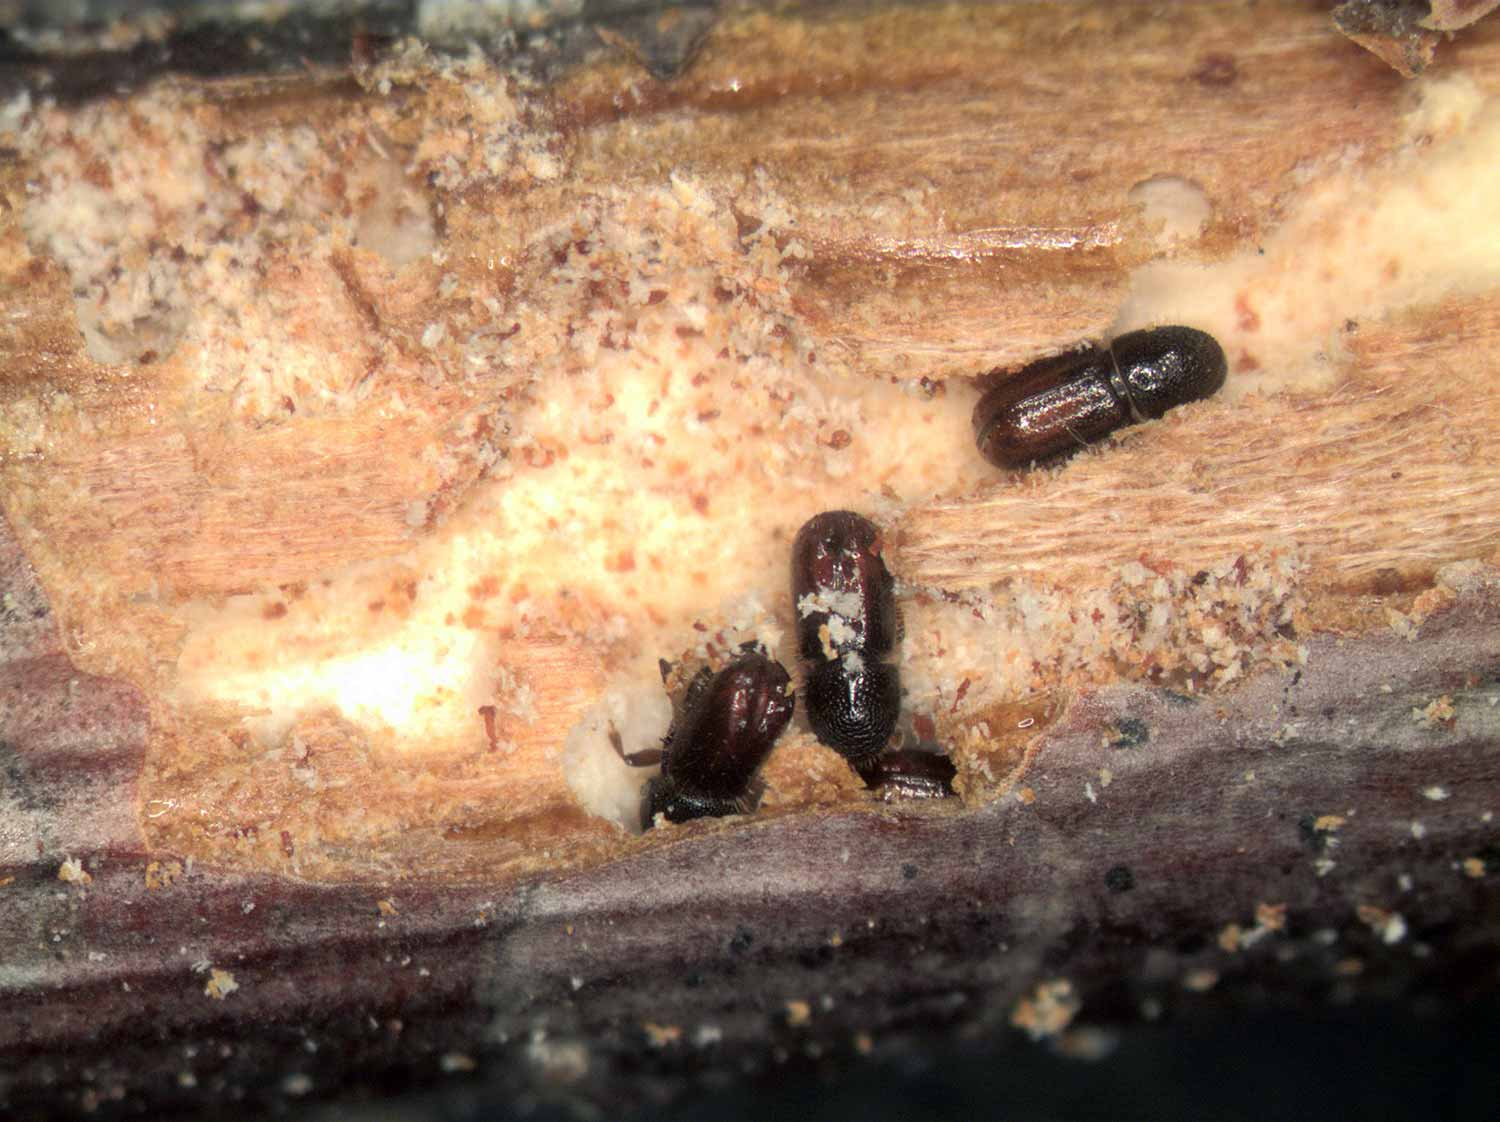 Adult Bark Beetles in a twig